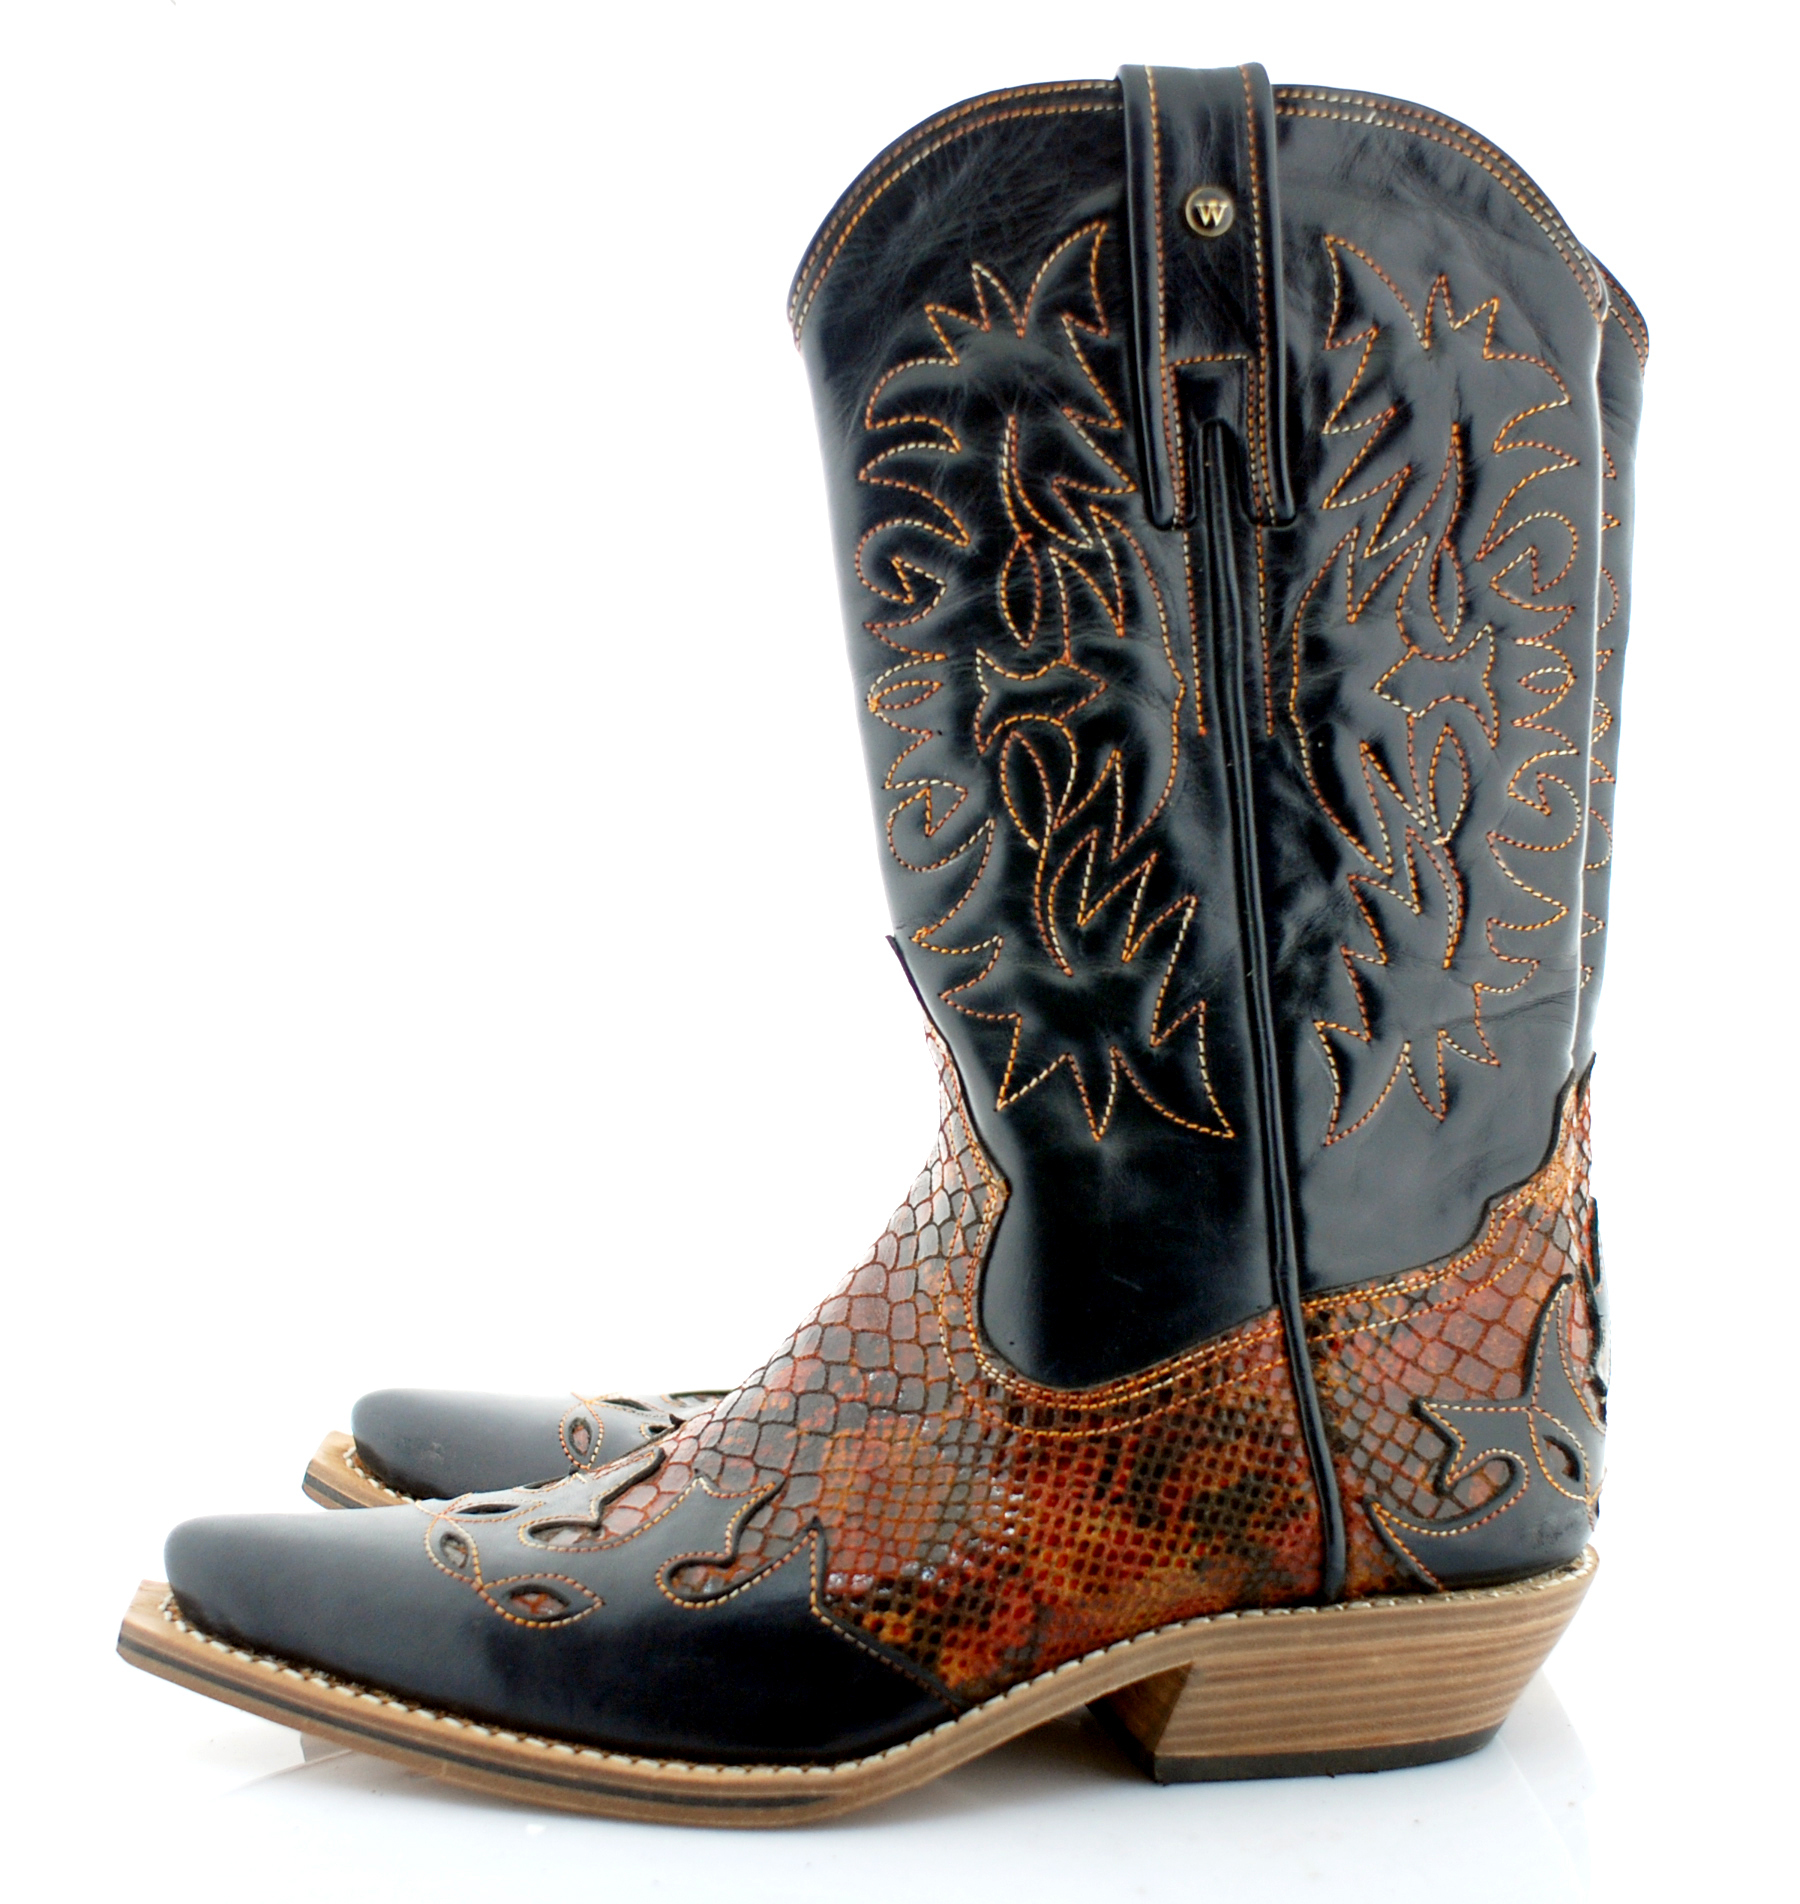 Classic Cowboy Unisex Handmade Riders Boots Sales On Now